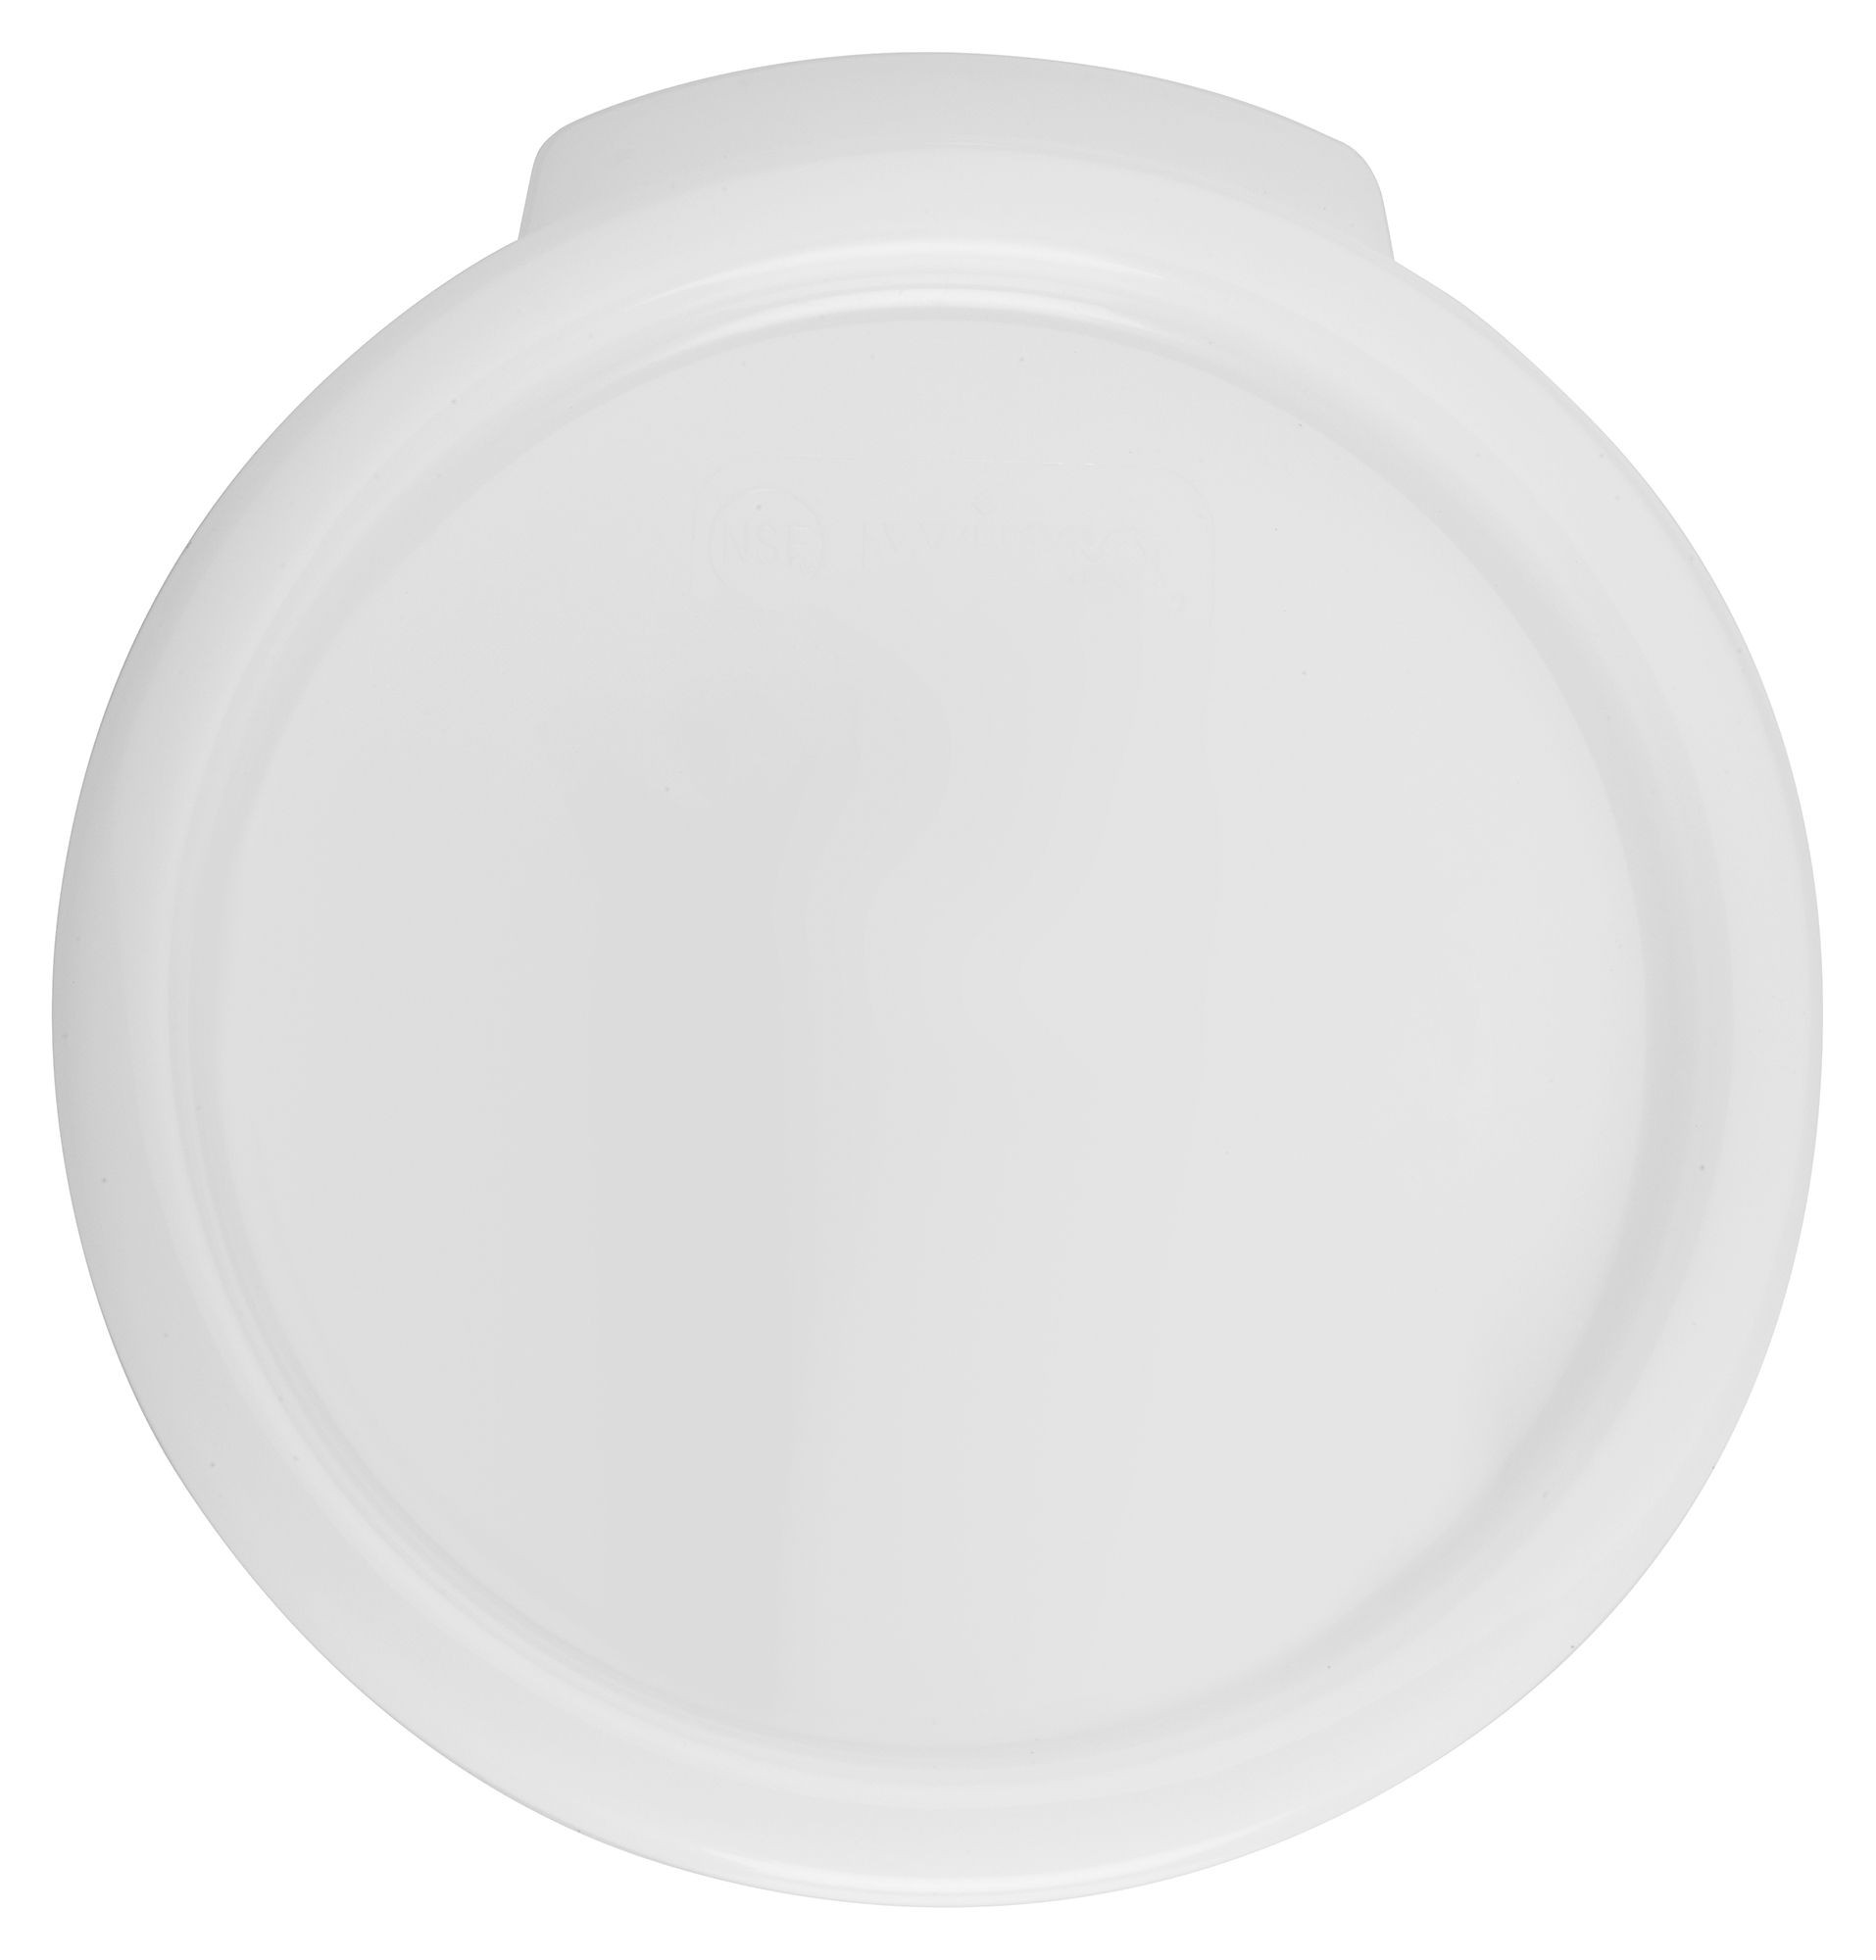 Winco PPRC-68C White Round Cover fits 6 and 8 Qt. Storage Containers